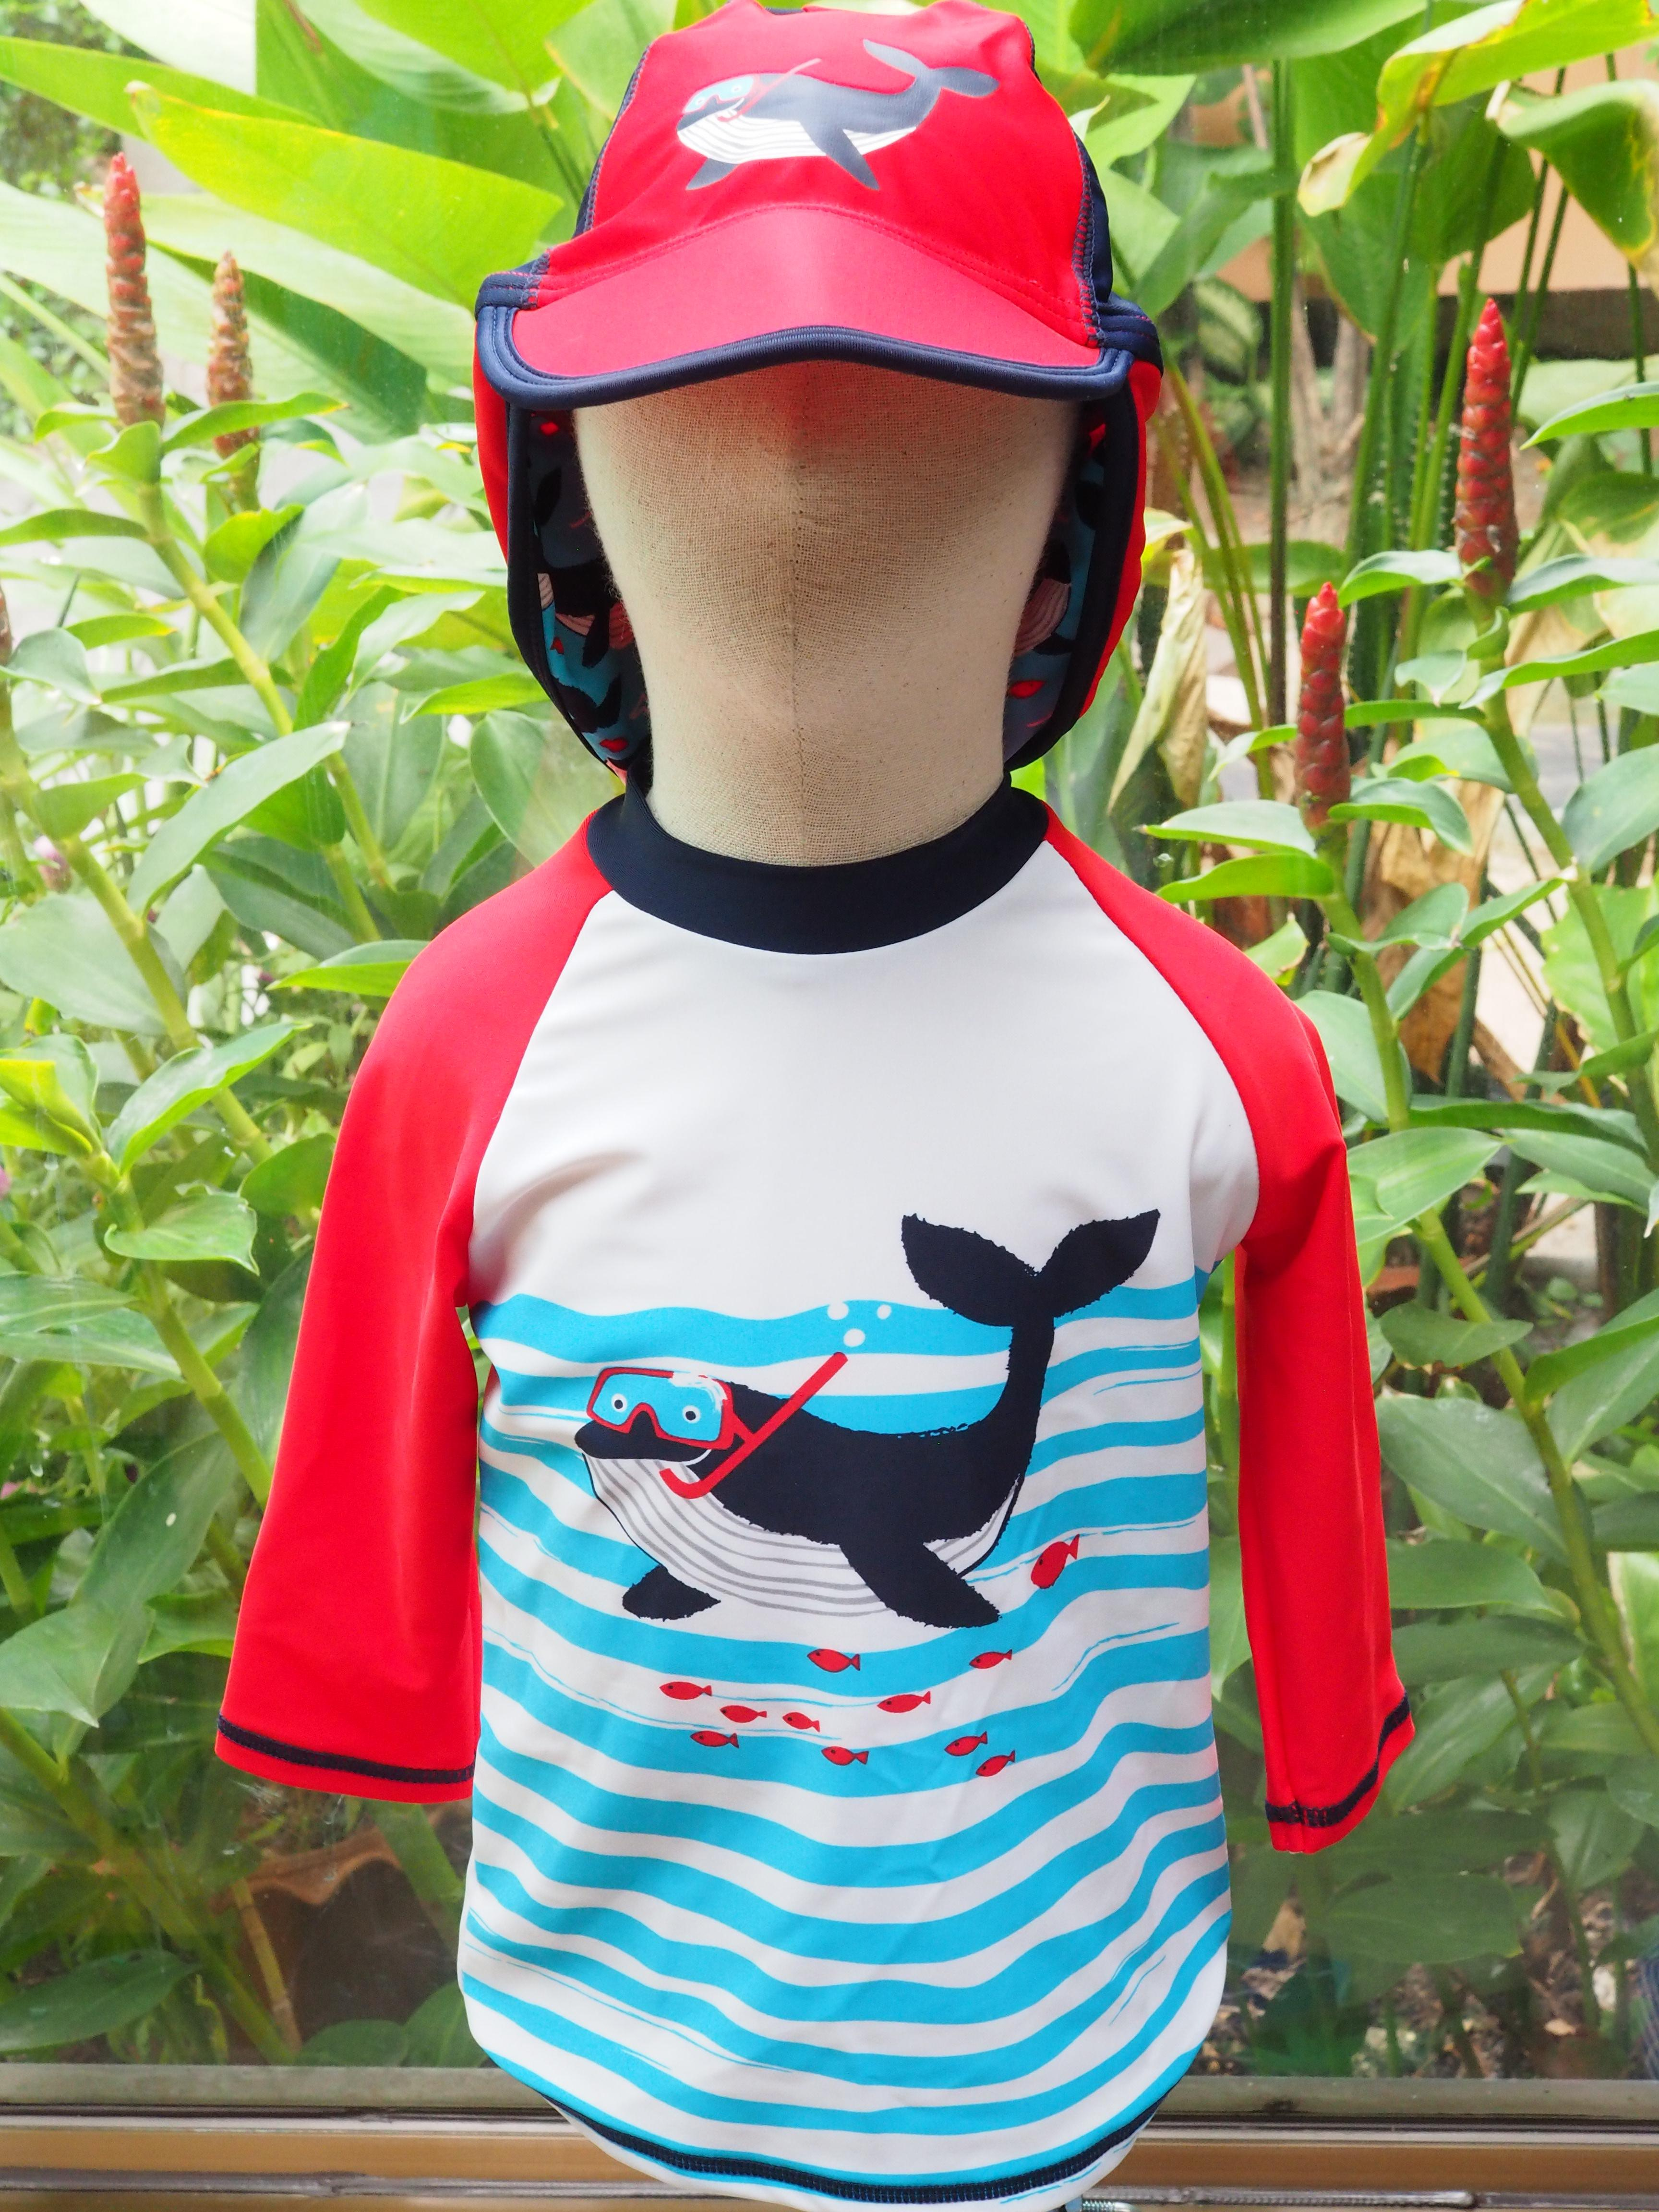 H&M size 3-4T